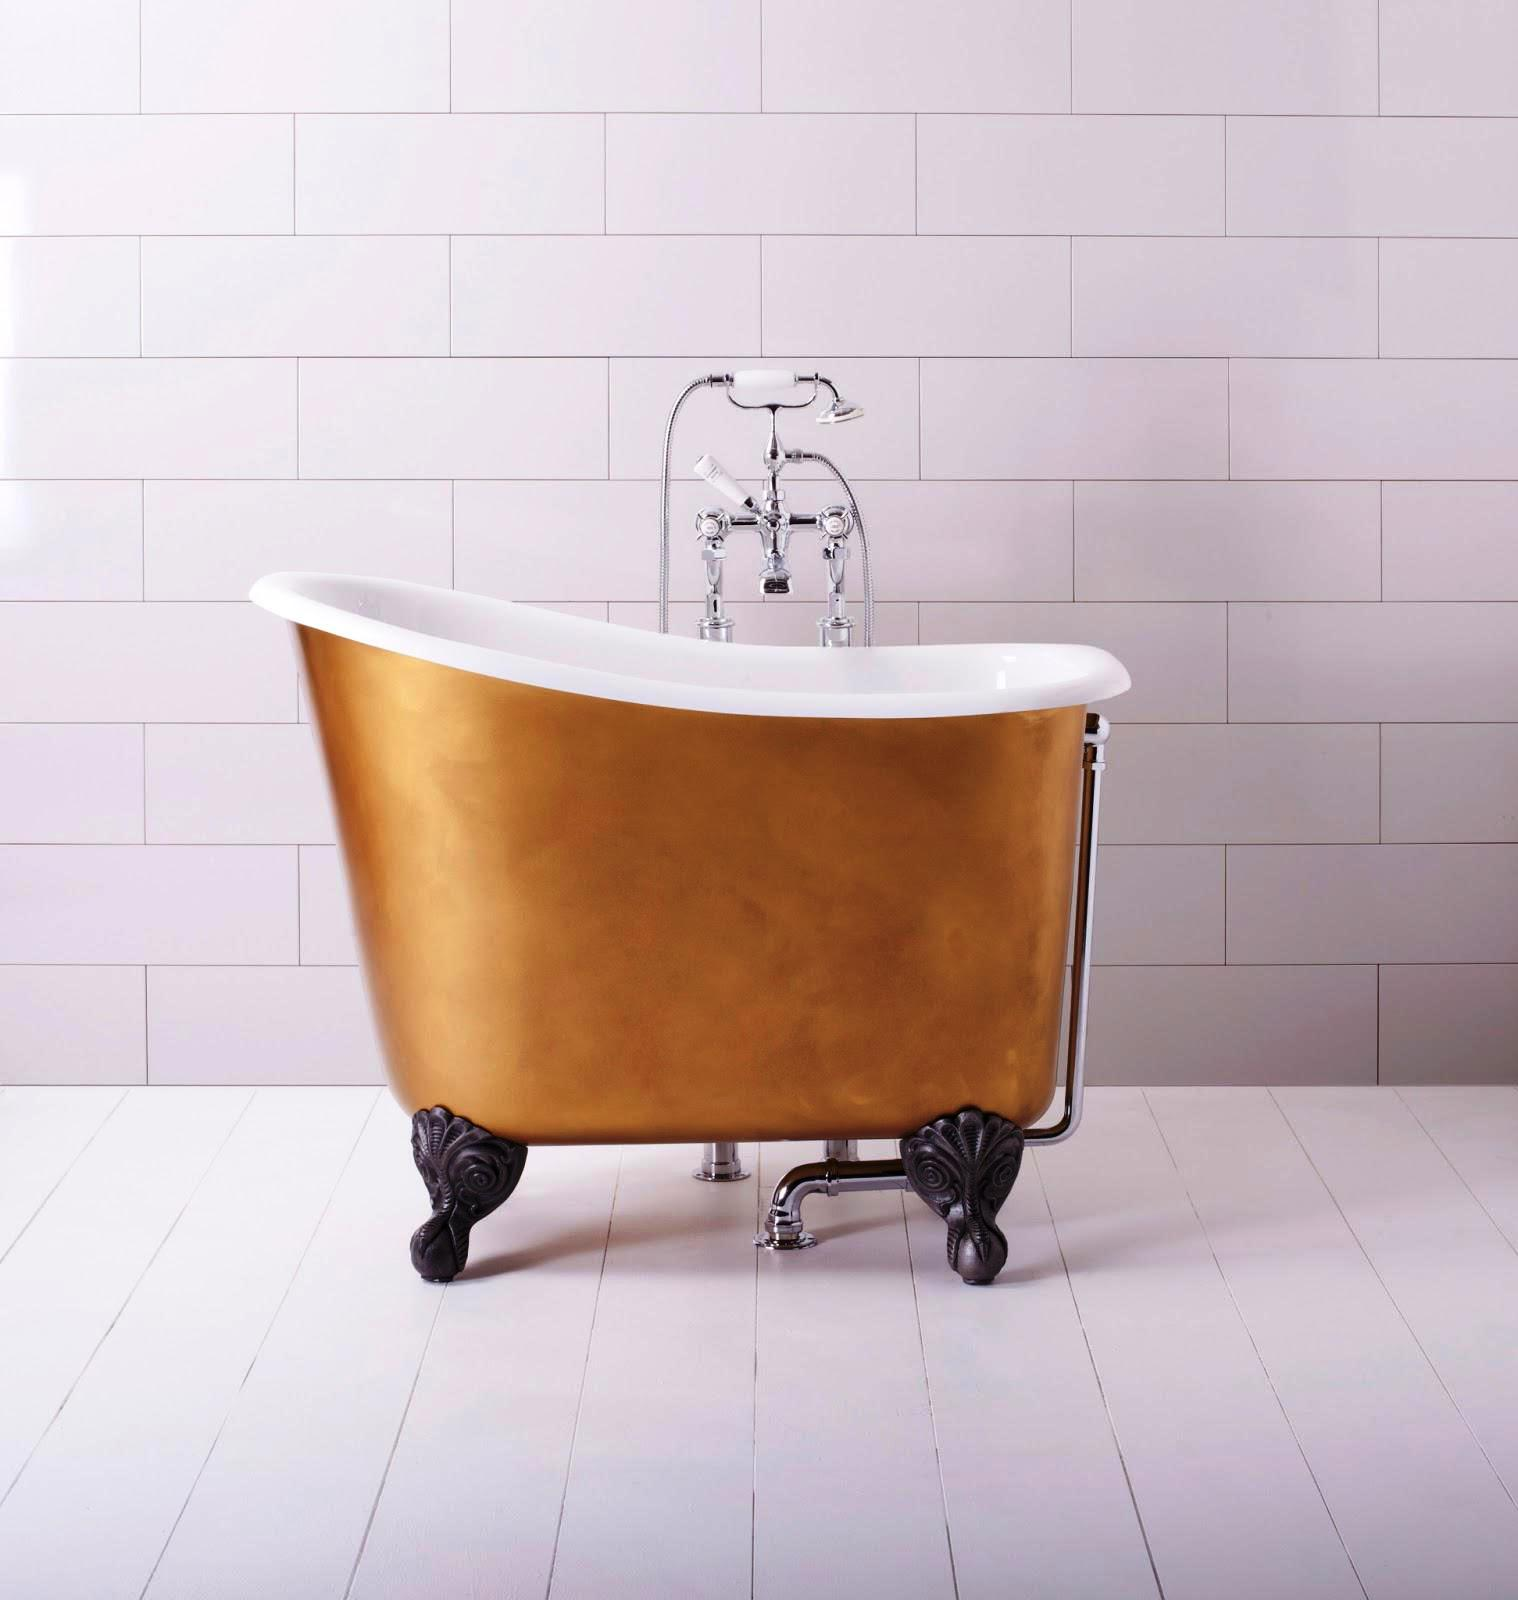 Small Soaking Tub Dimensions Schmidt Gallery Design